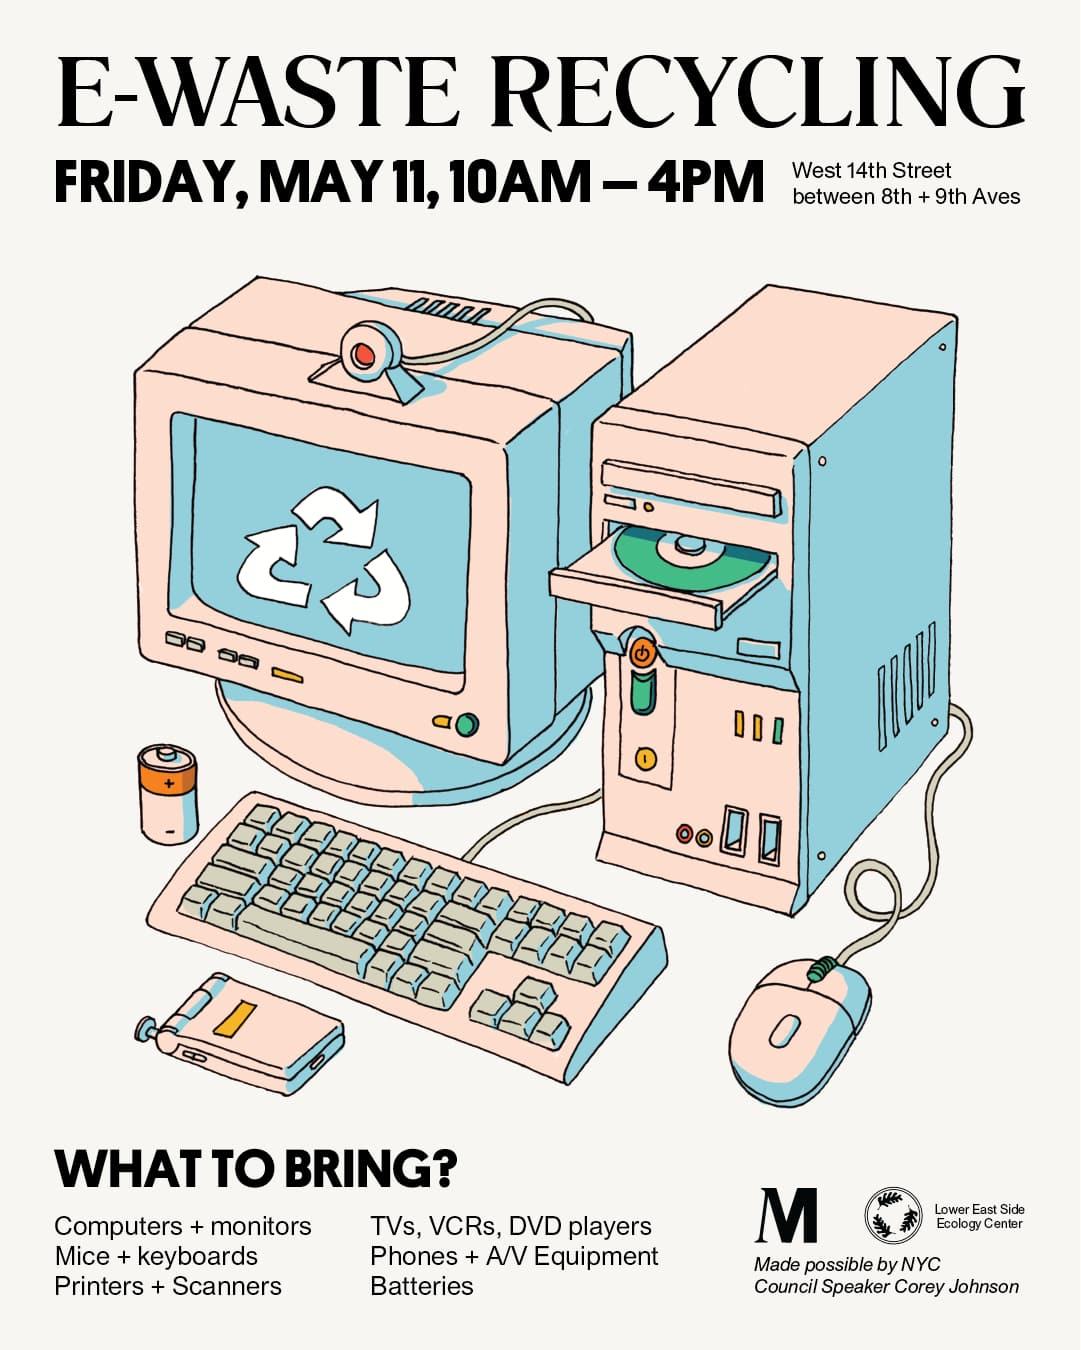 E-Waste Recycling Event Details